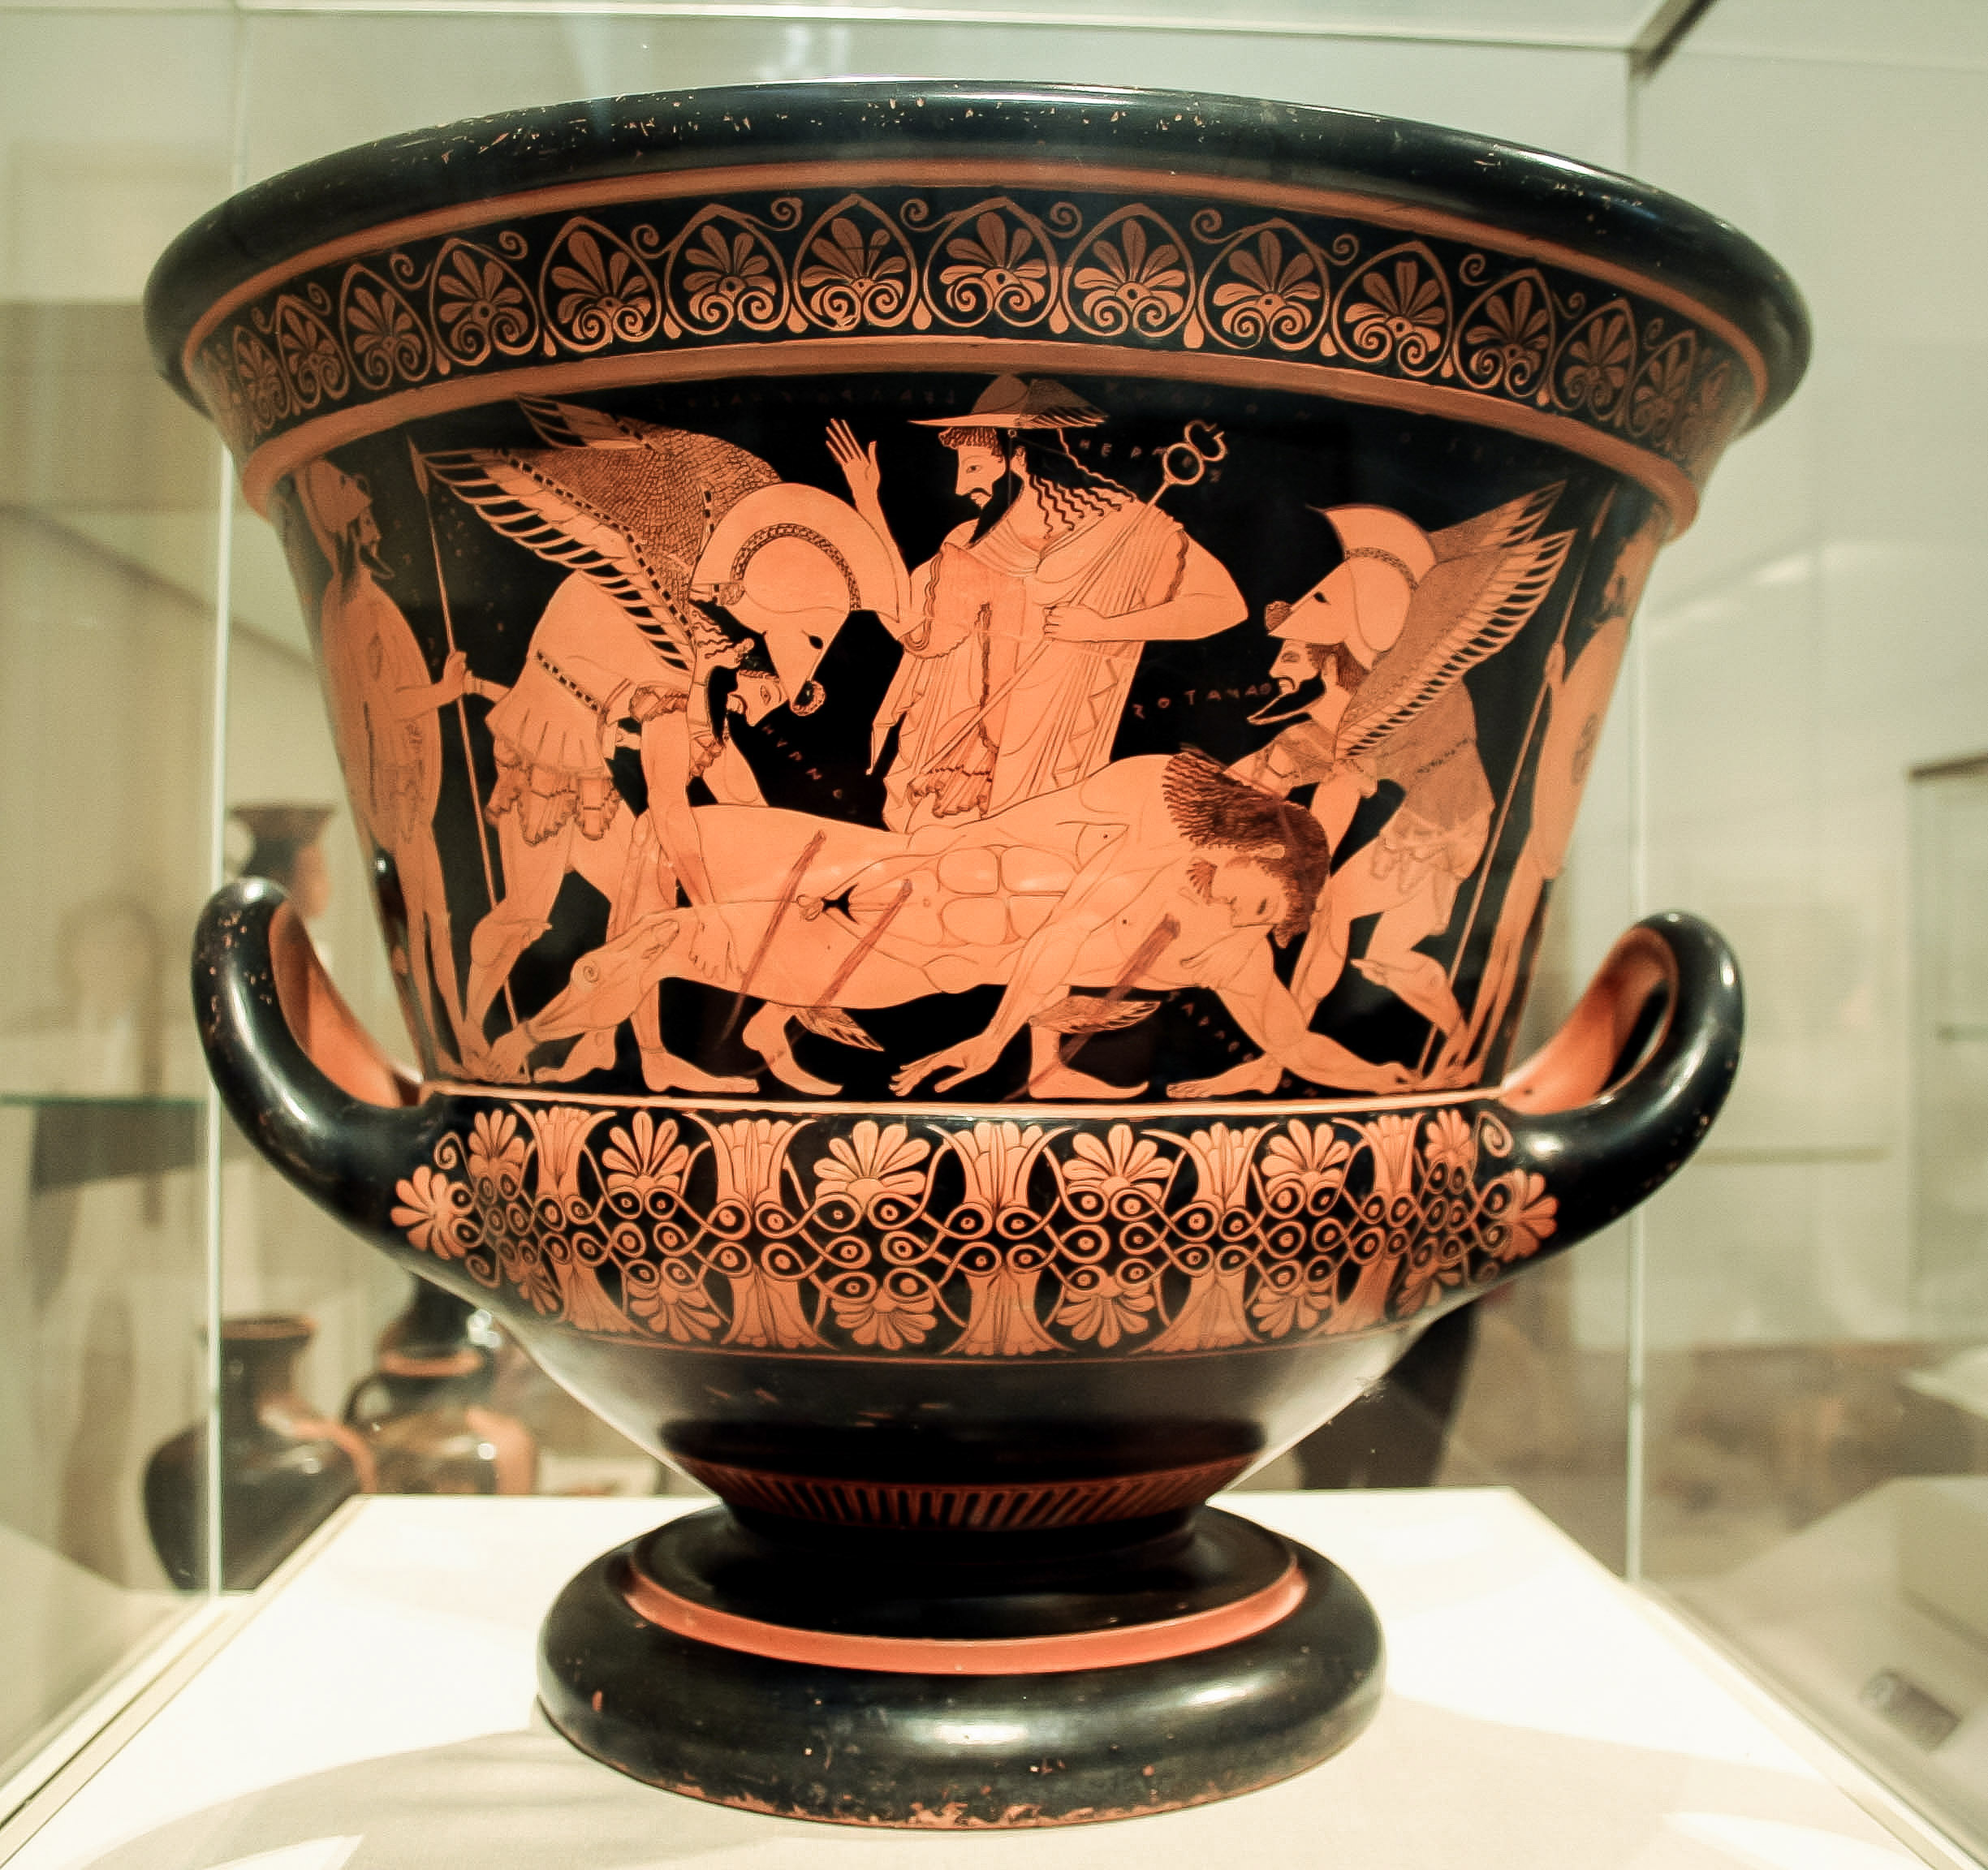 Ancient greek funerary vases wikipedia iconographyedit reviewsmspy